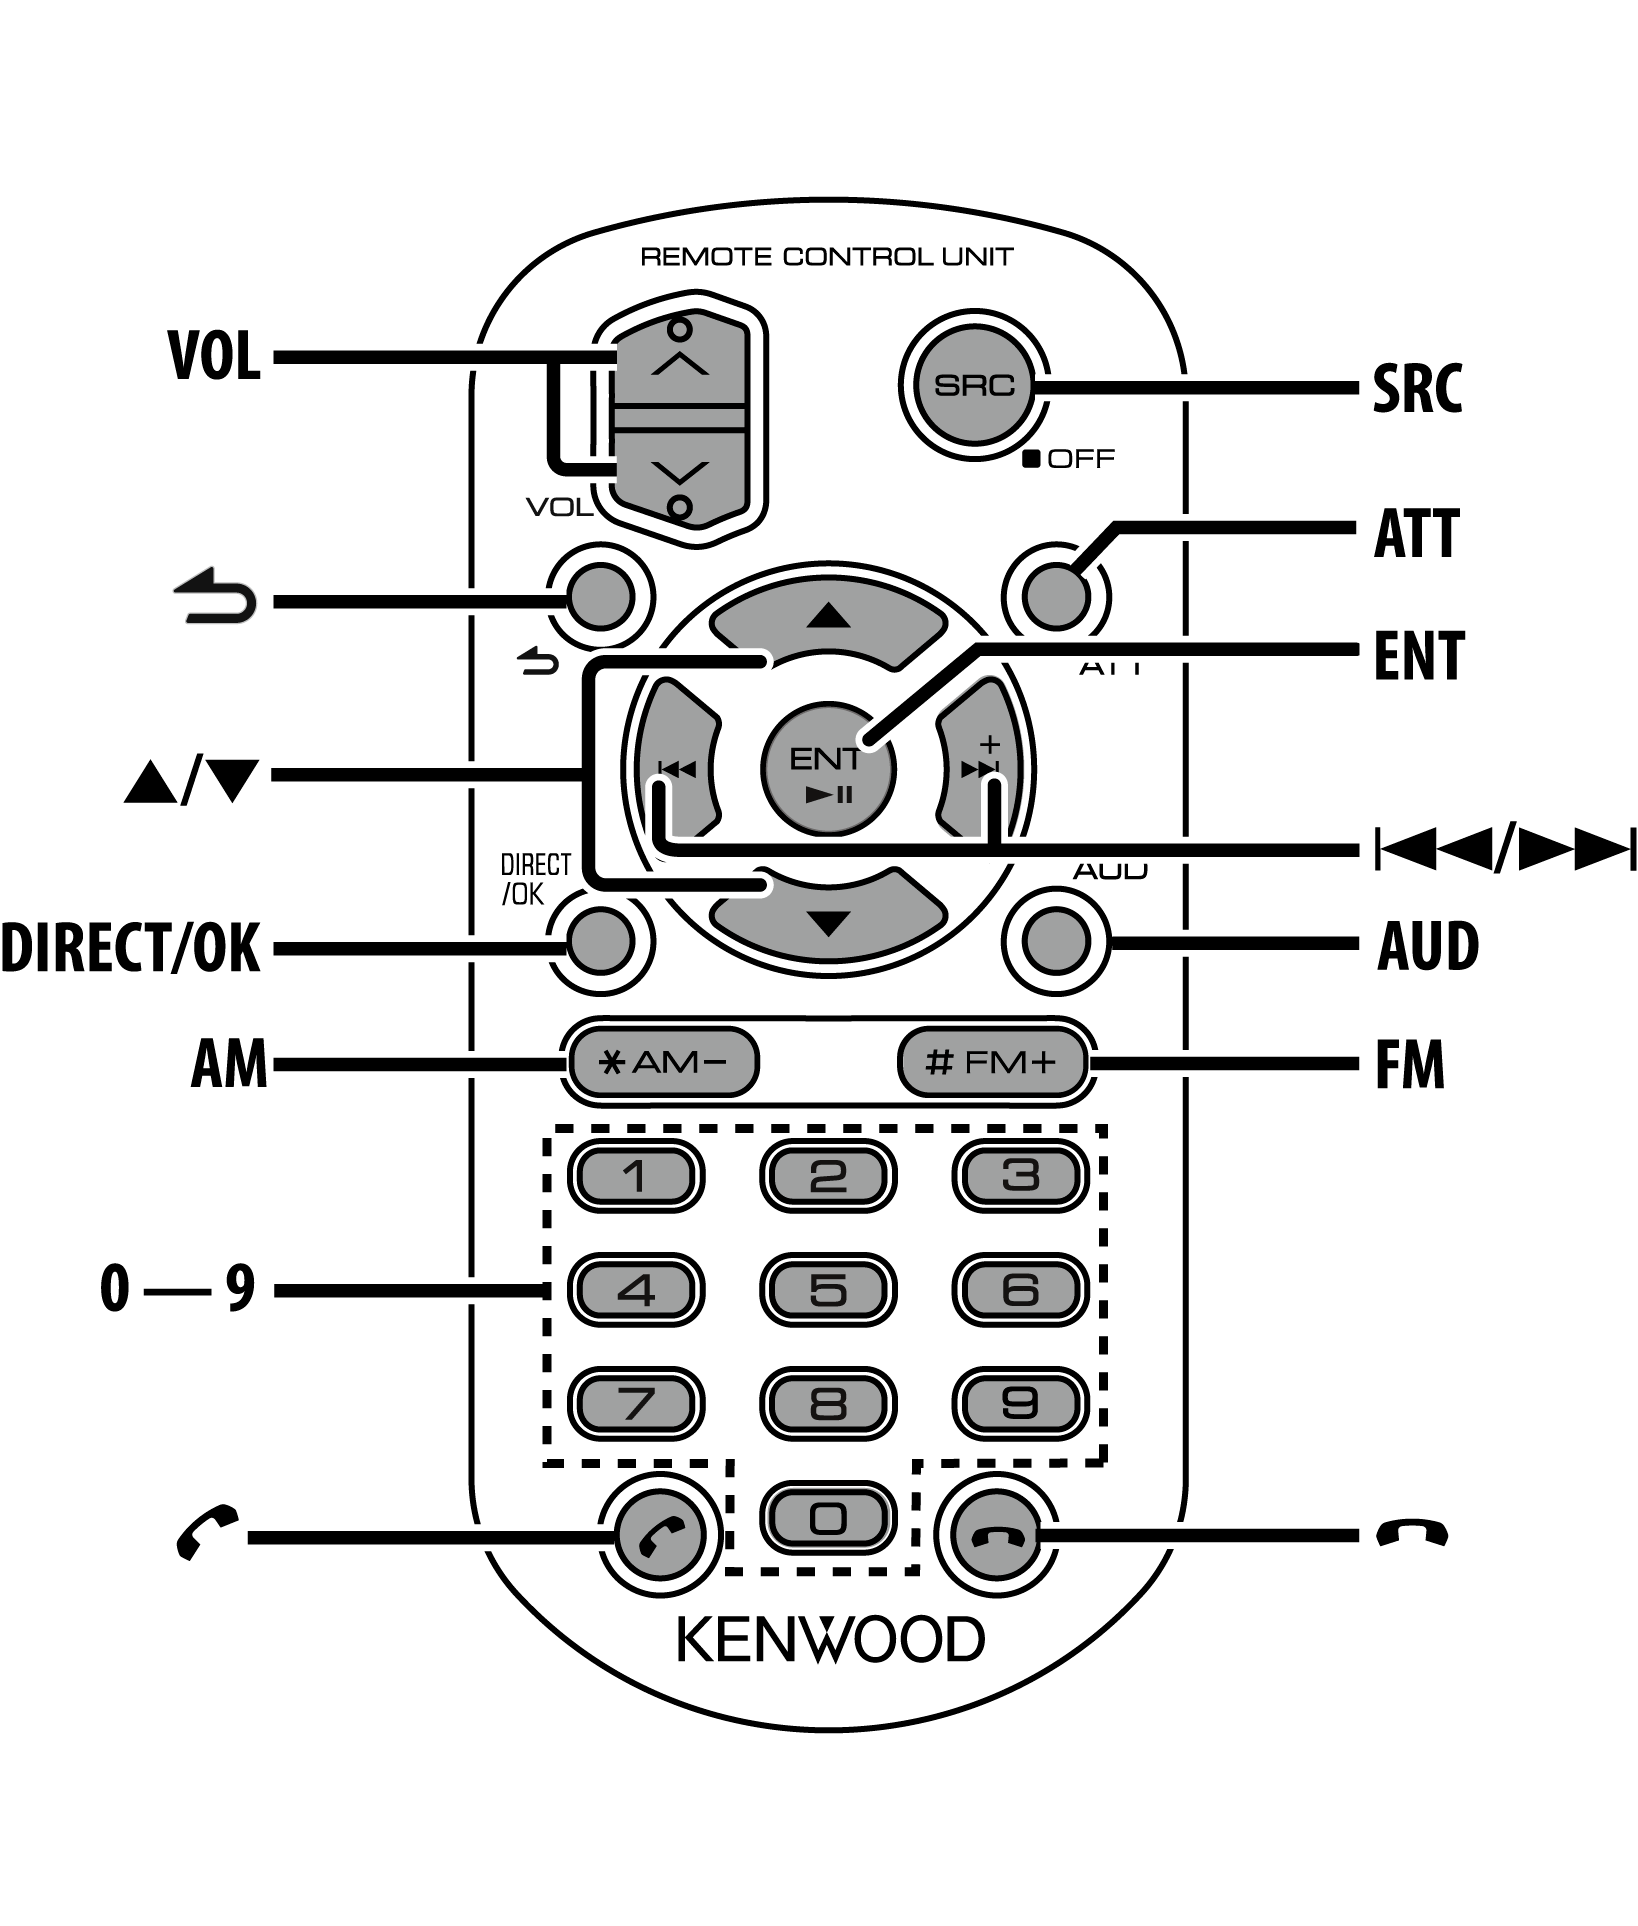 Kenwood Kmr 555u Wiring Diagram : 31 Wiring Diagram Images